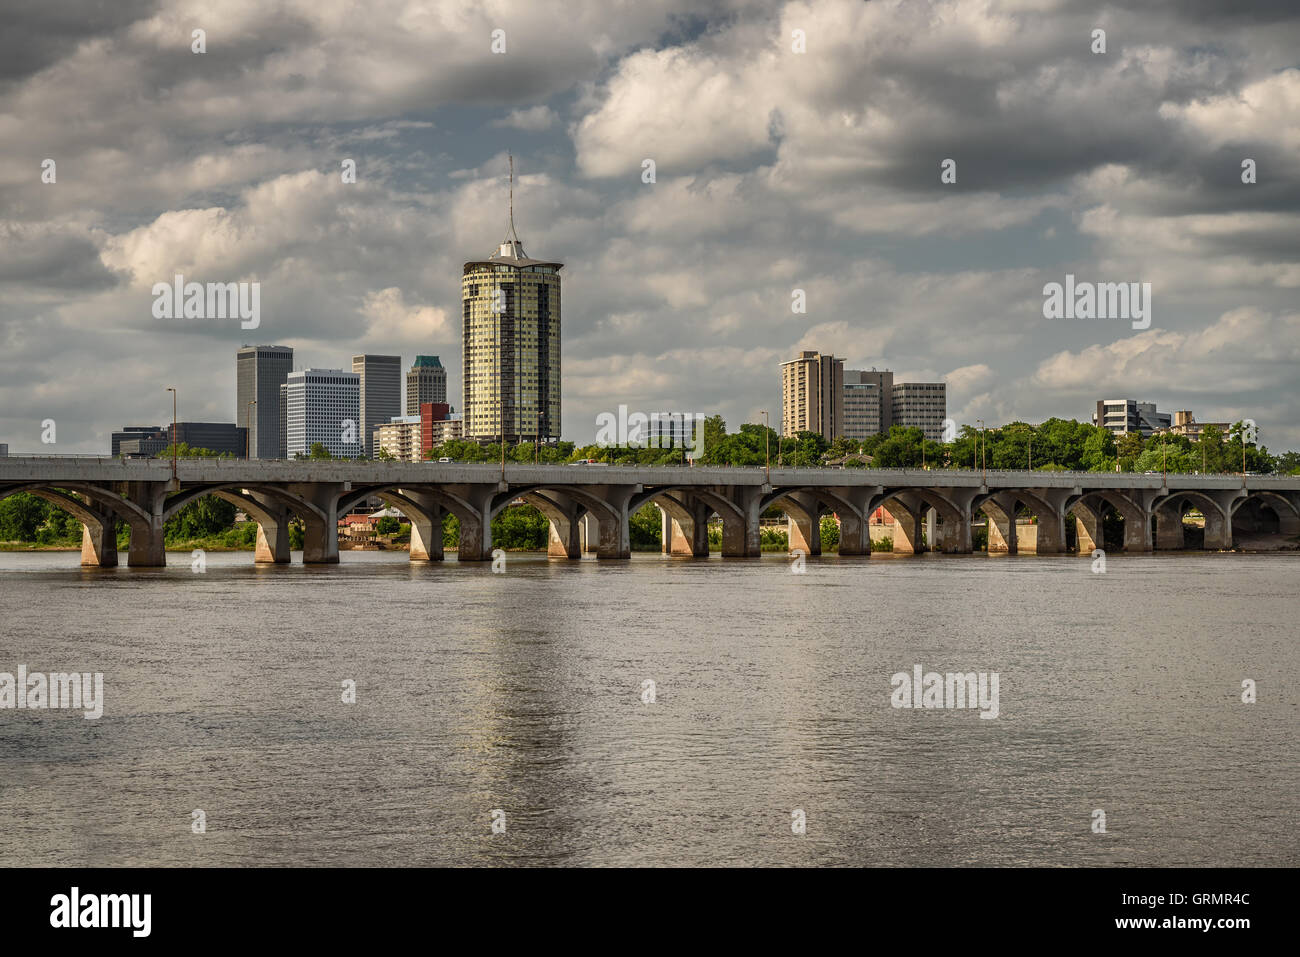 Skyline of Tulsa, Oklahoma with Arkansas river in the foreground - Stock Image